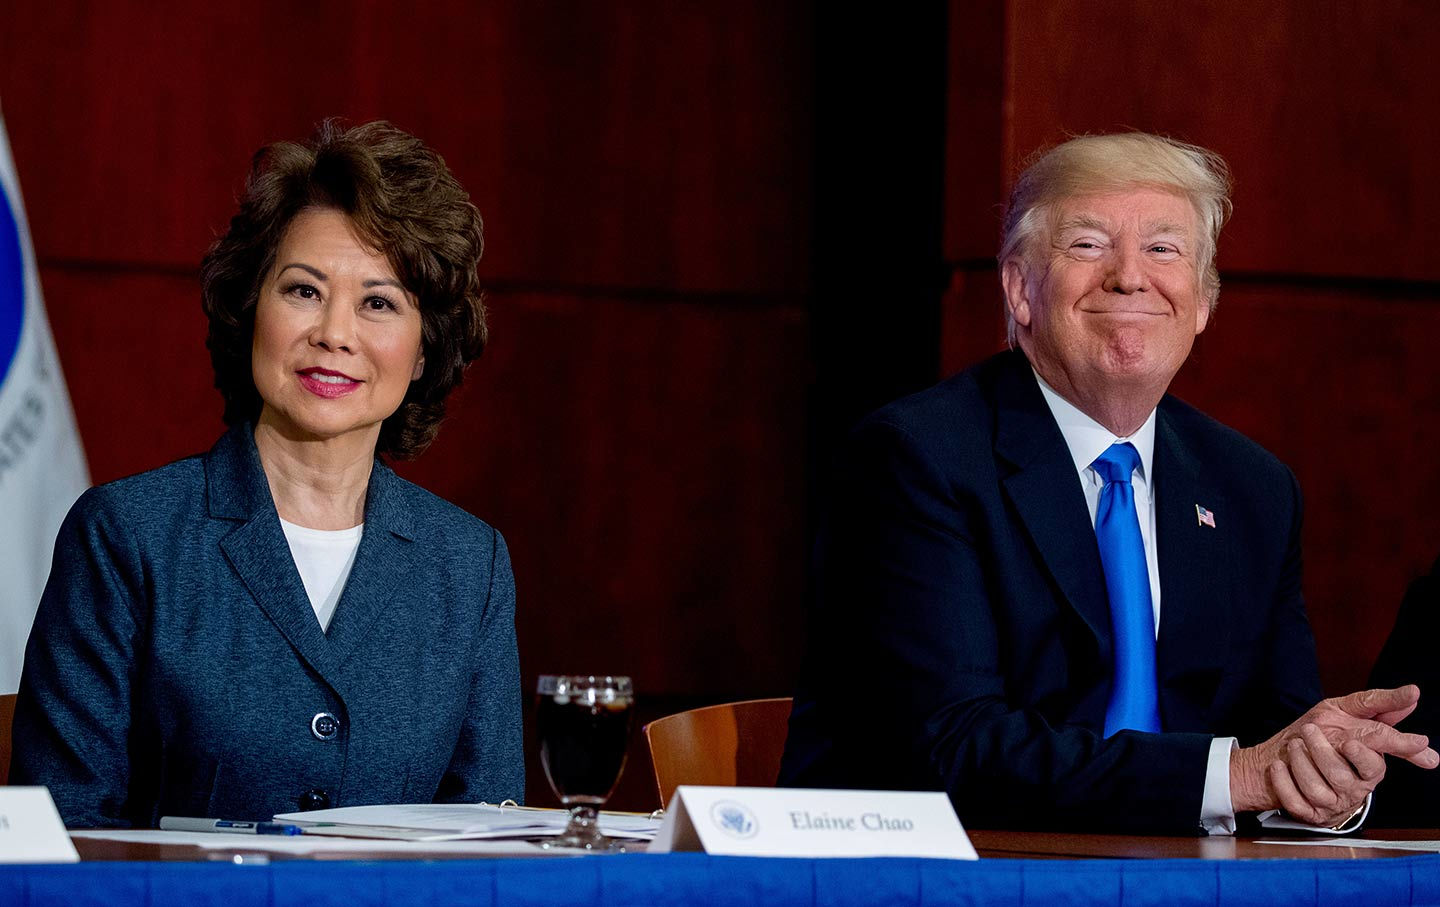 , Shocking (not): Elaine Chao Accused of Misusing Her Position as Sec'y of Transportation, The Politicus